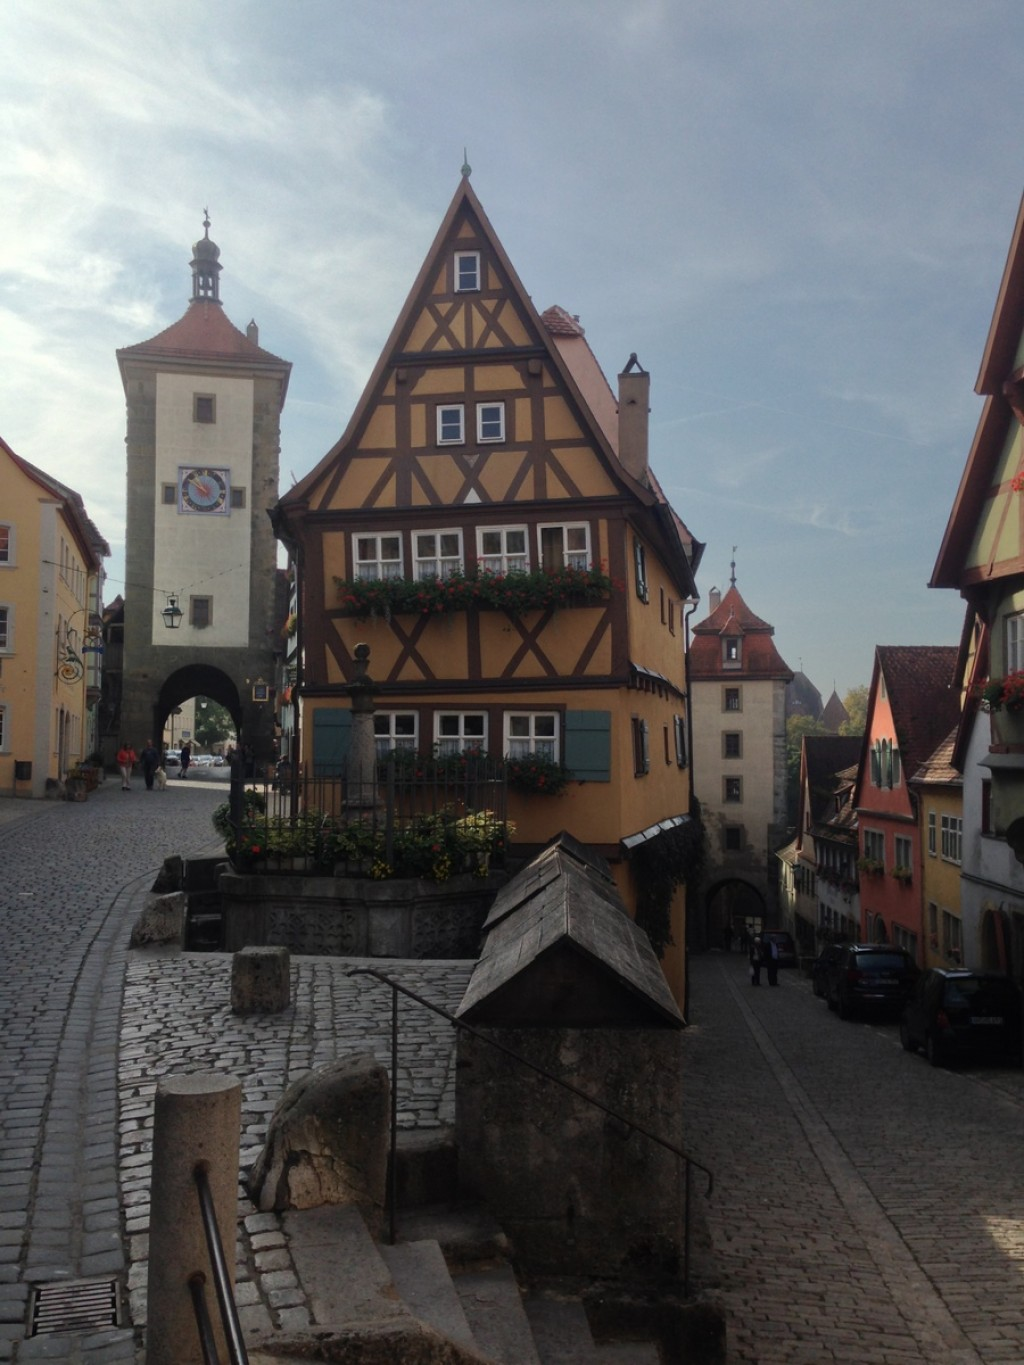 Plonelin Fork, the most photographed street in Rothenburg ob der Taubern